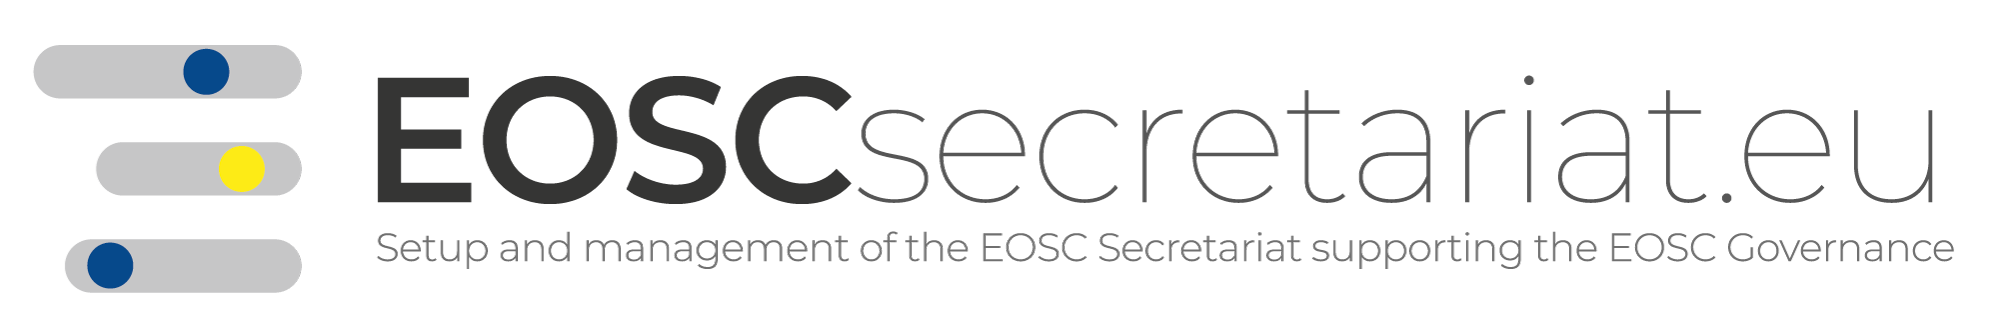 eosc_secretariat_logo_final.png